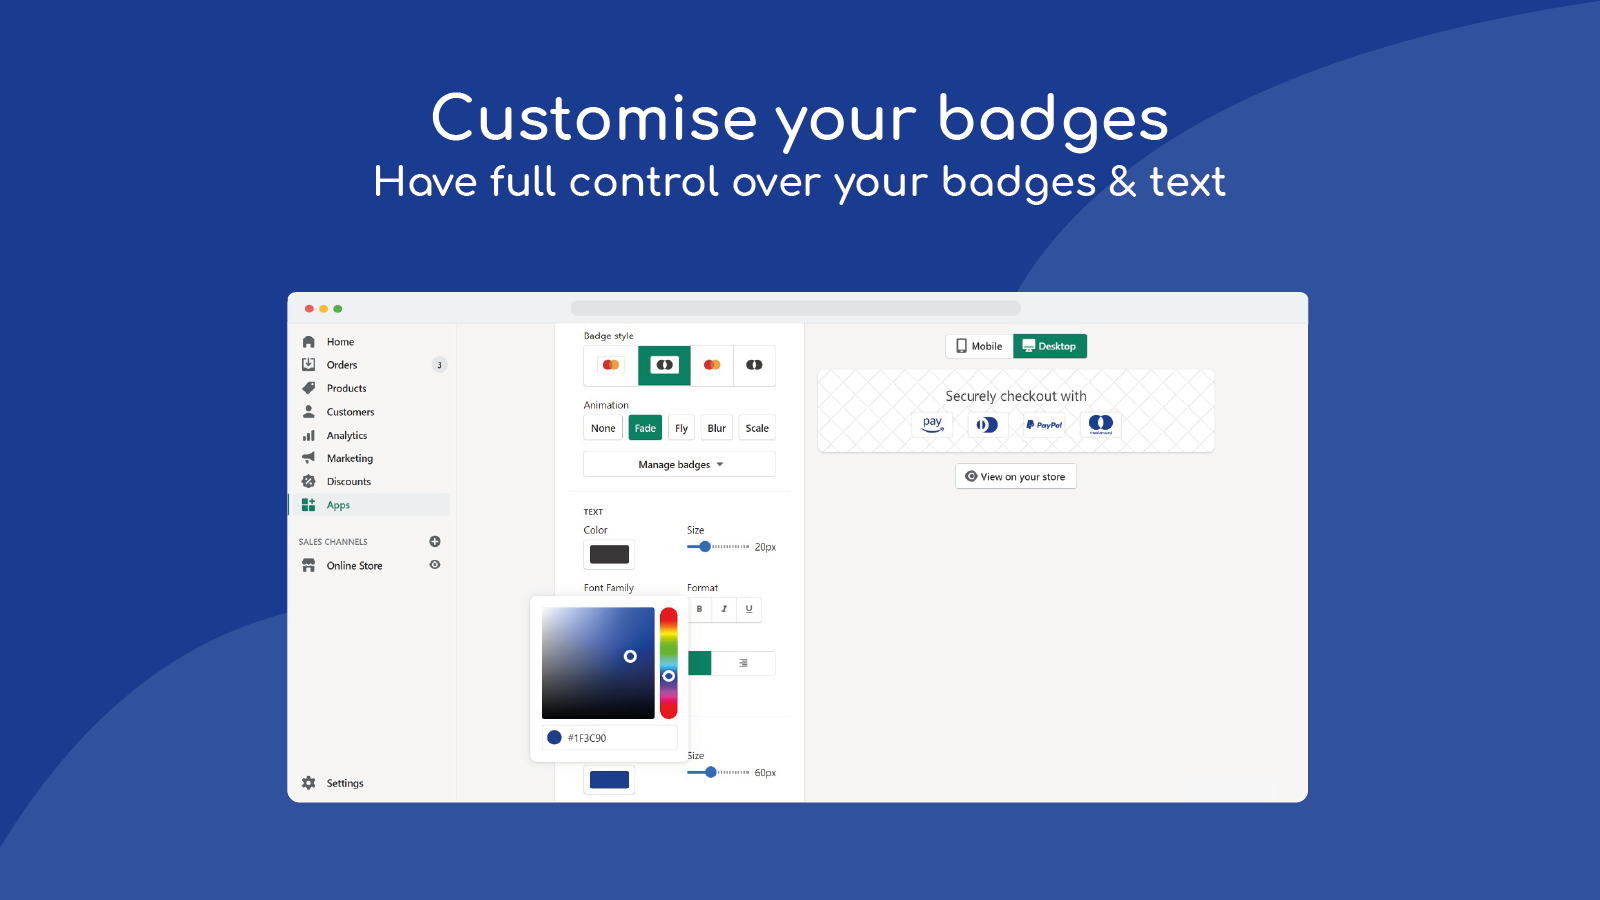 have full control over your badges & text